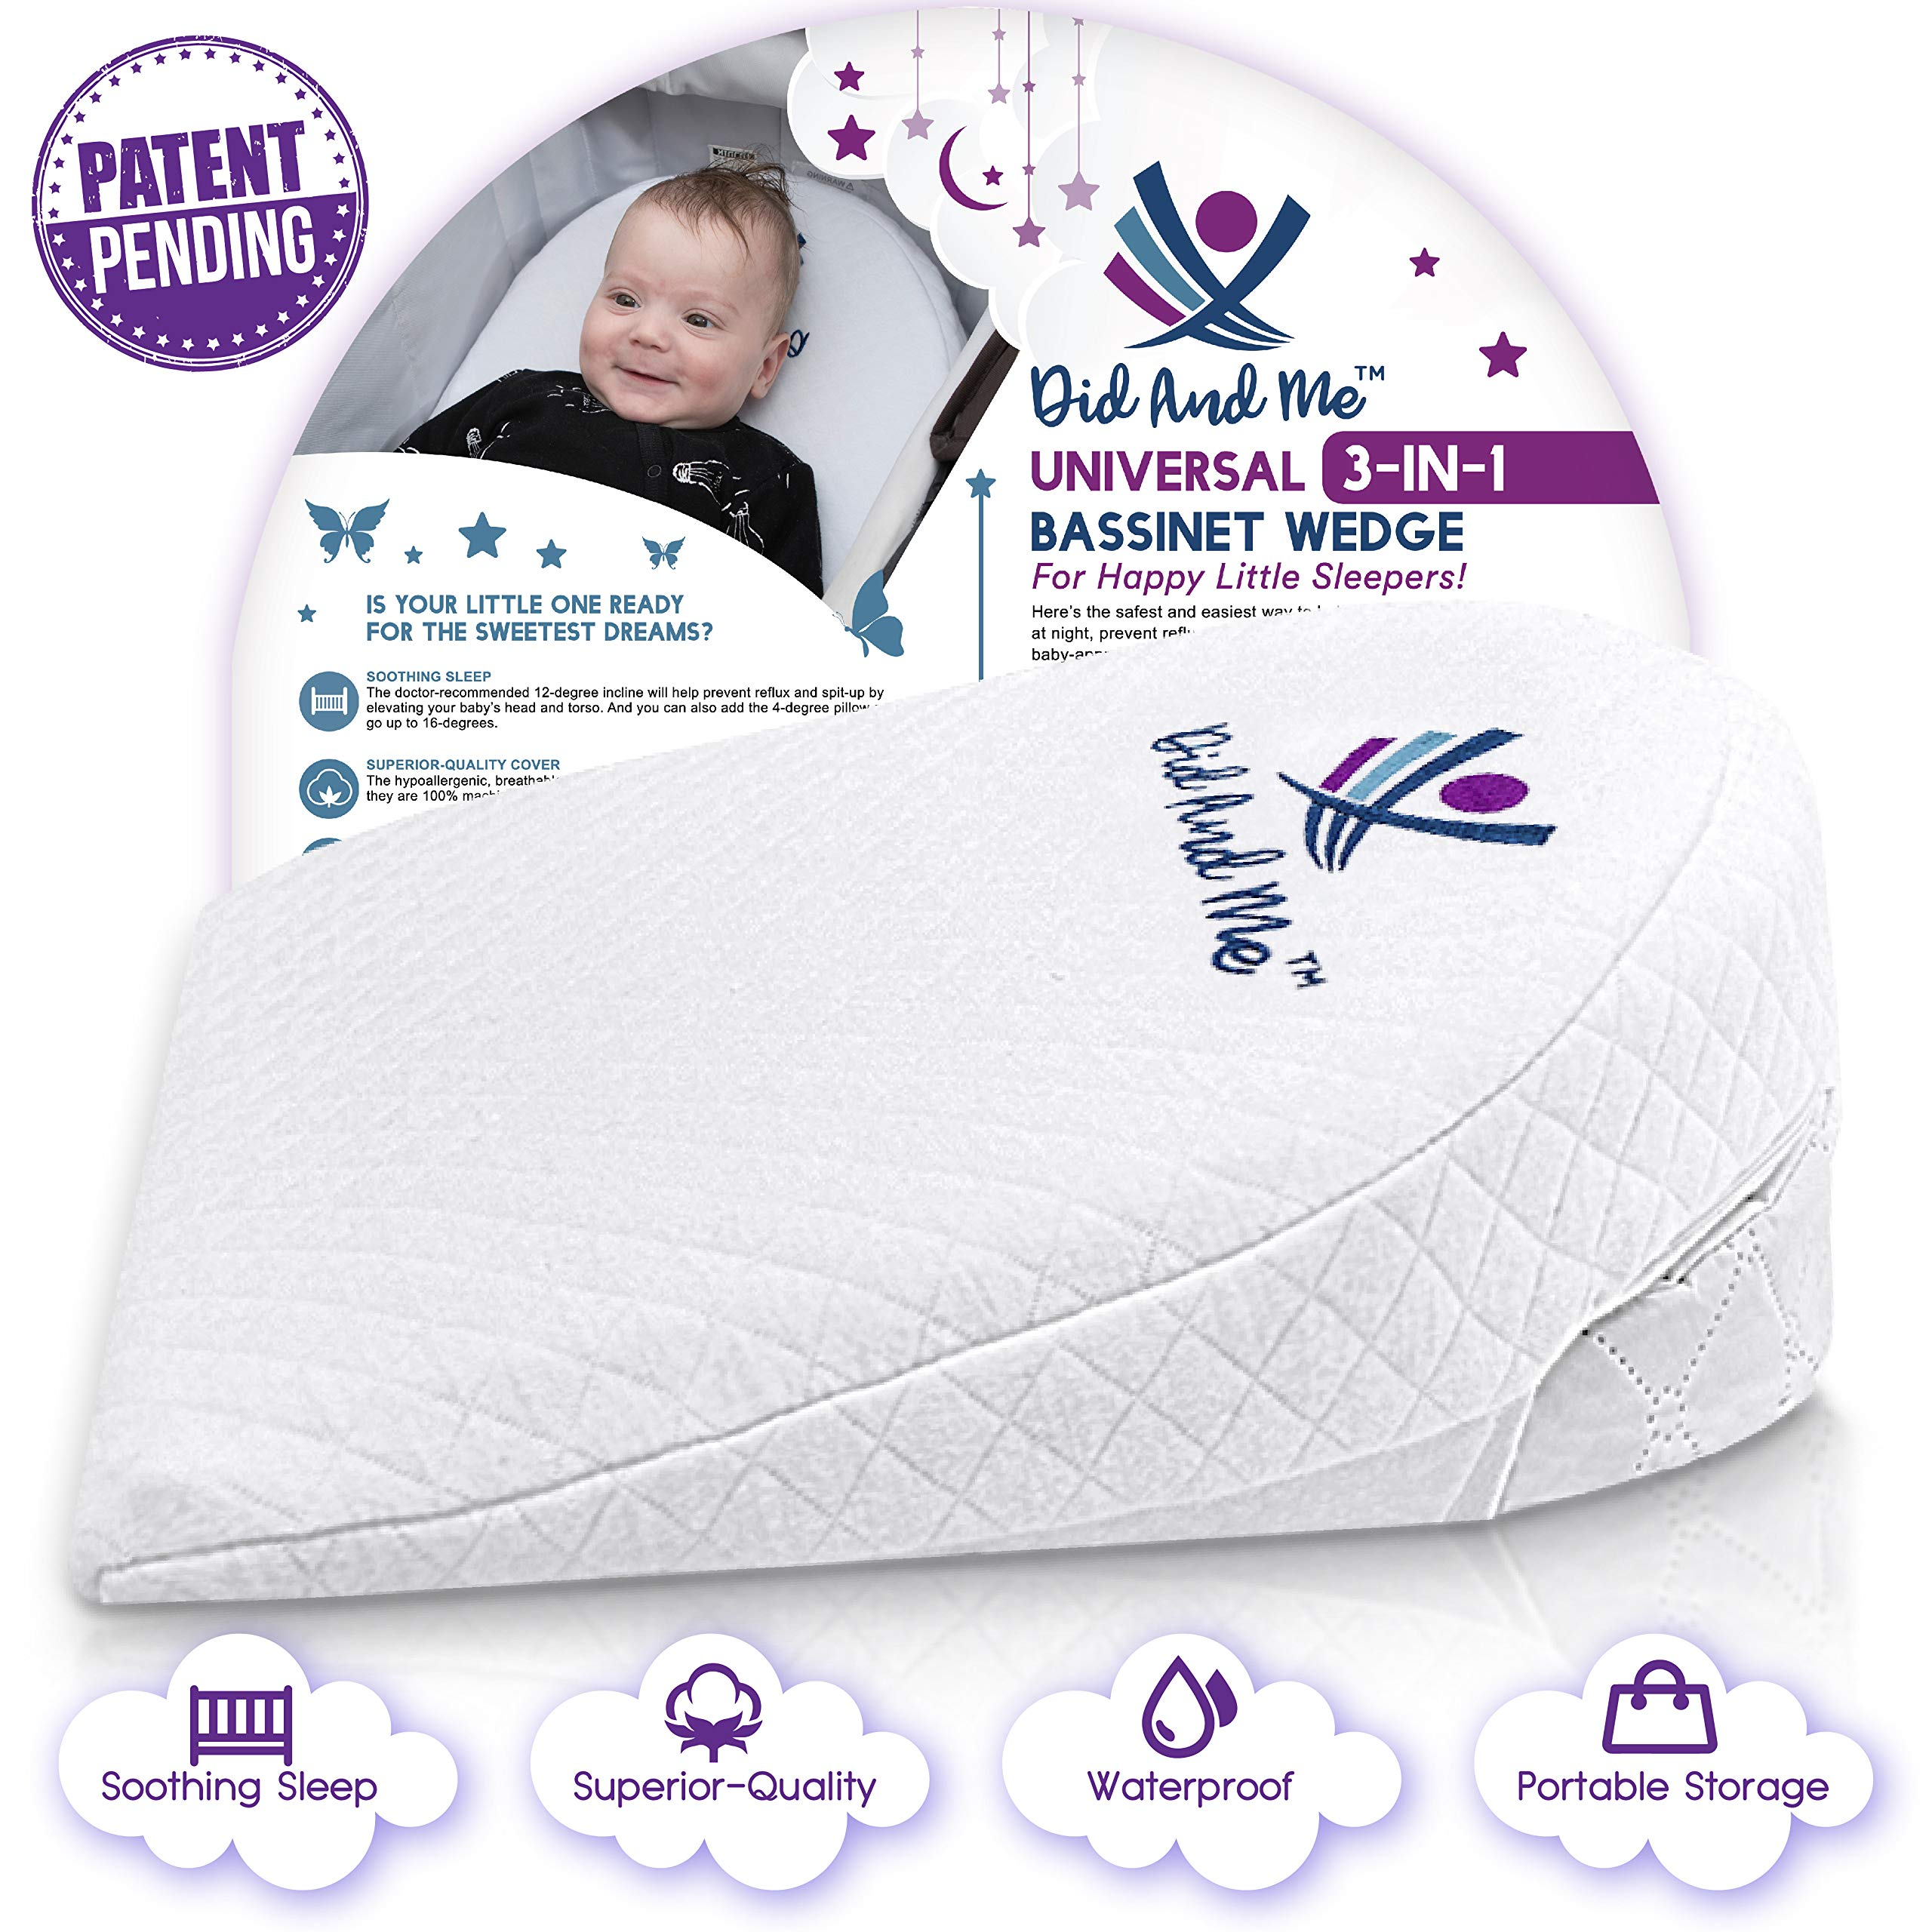 Bassinet Wedge Pillow for Baby - Universal - 3 Elevation Options for Better Sleep | Aids in Relieving Reflux | Nasal Congestion | Feeding - Happy Baby and Happy Parents - Cotton Fabric w/Carry Case by Did and Me